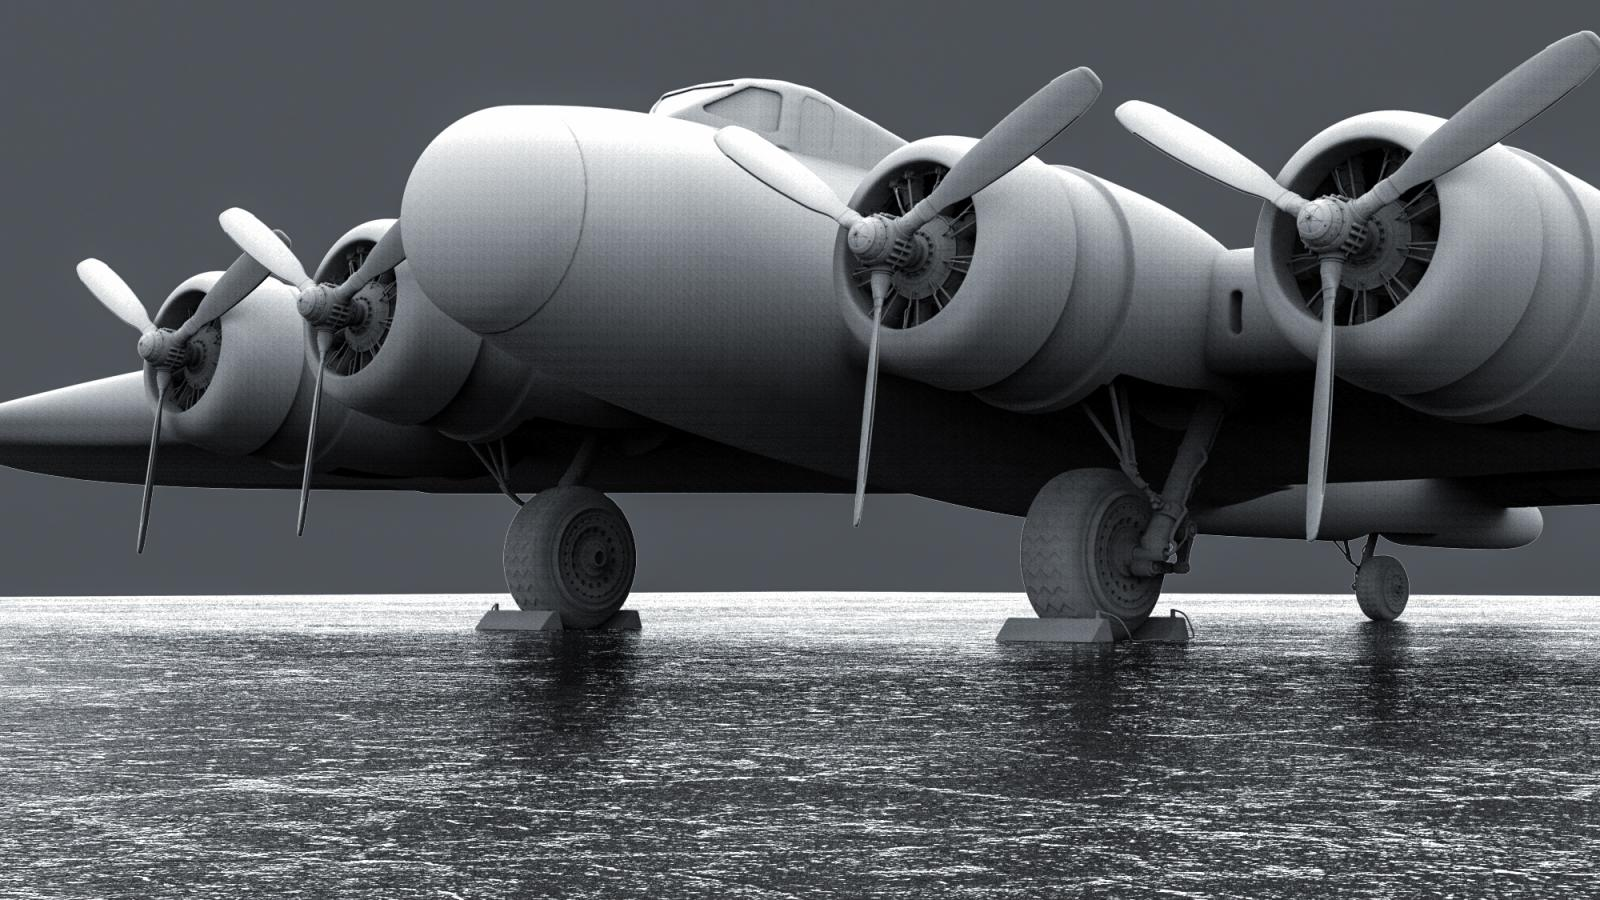 b17-jet 1822 jpg - Gallery of Finished Works - 3D Coat Forums